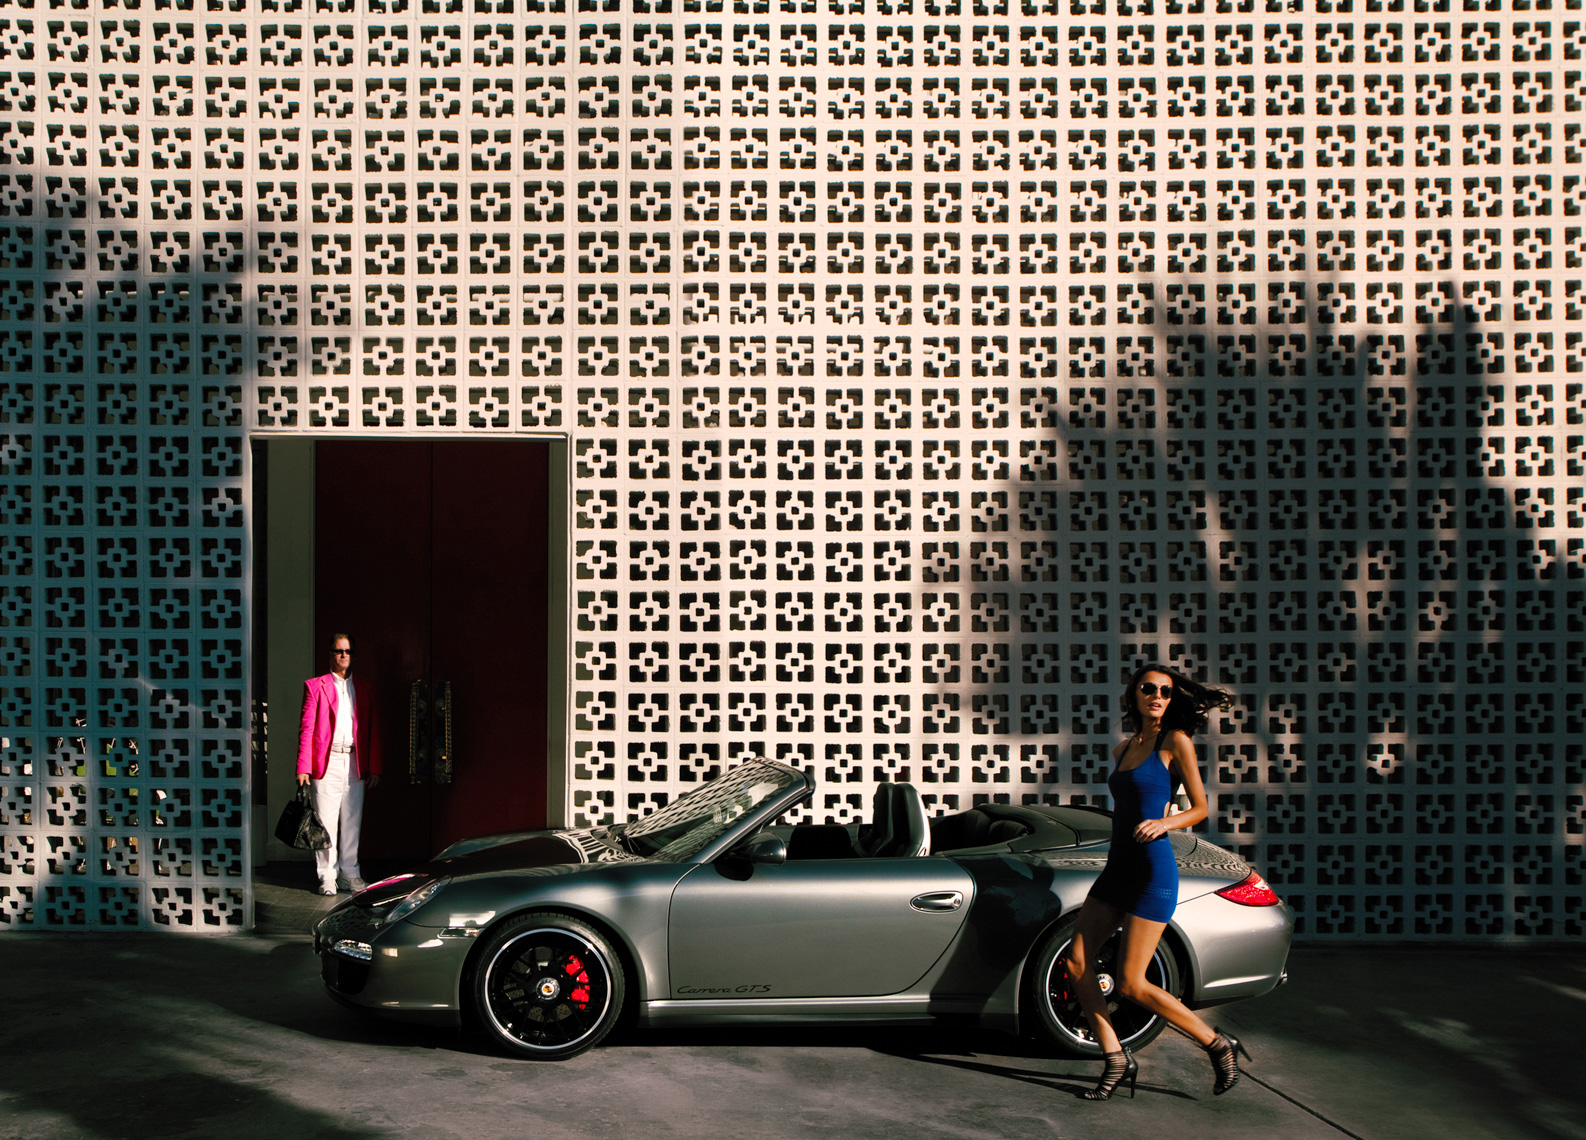 Fashion model Porsche 911 convertible by commercial automotive car photographer Michael Grecco